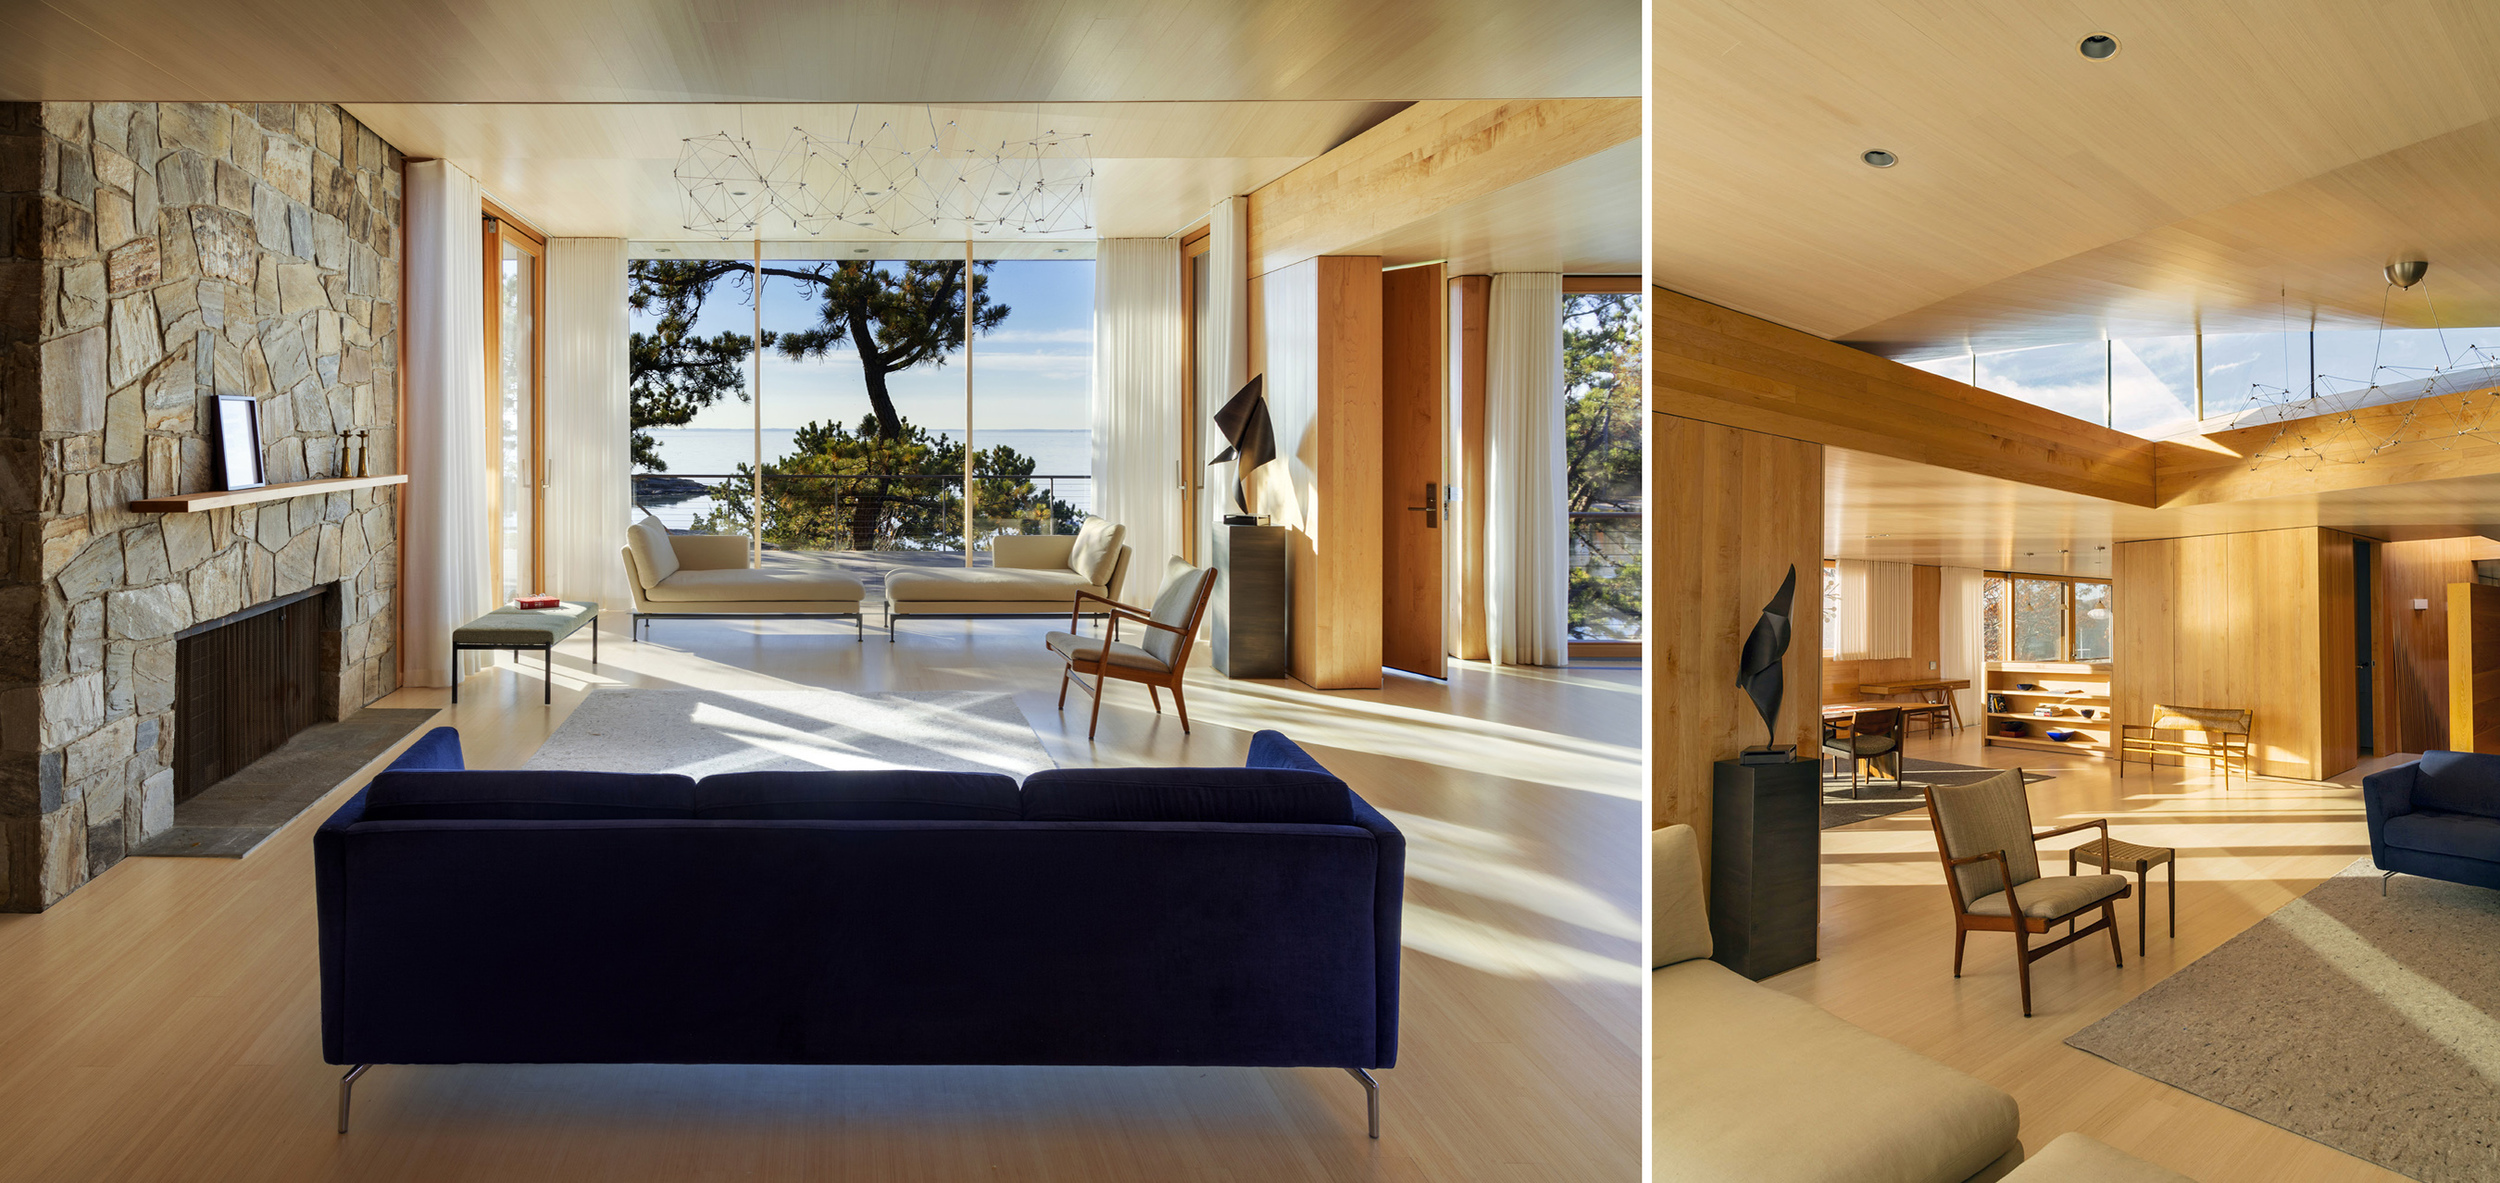 Quarry House       Gray Organschi Architects